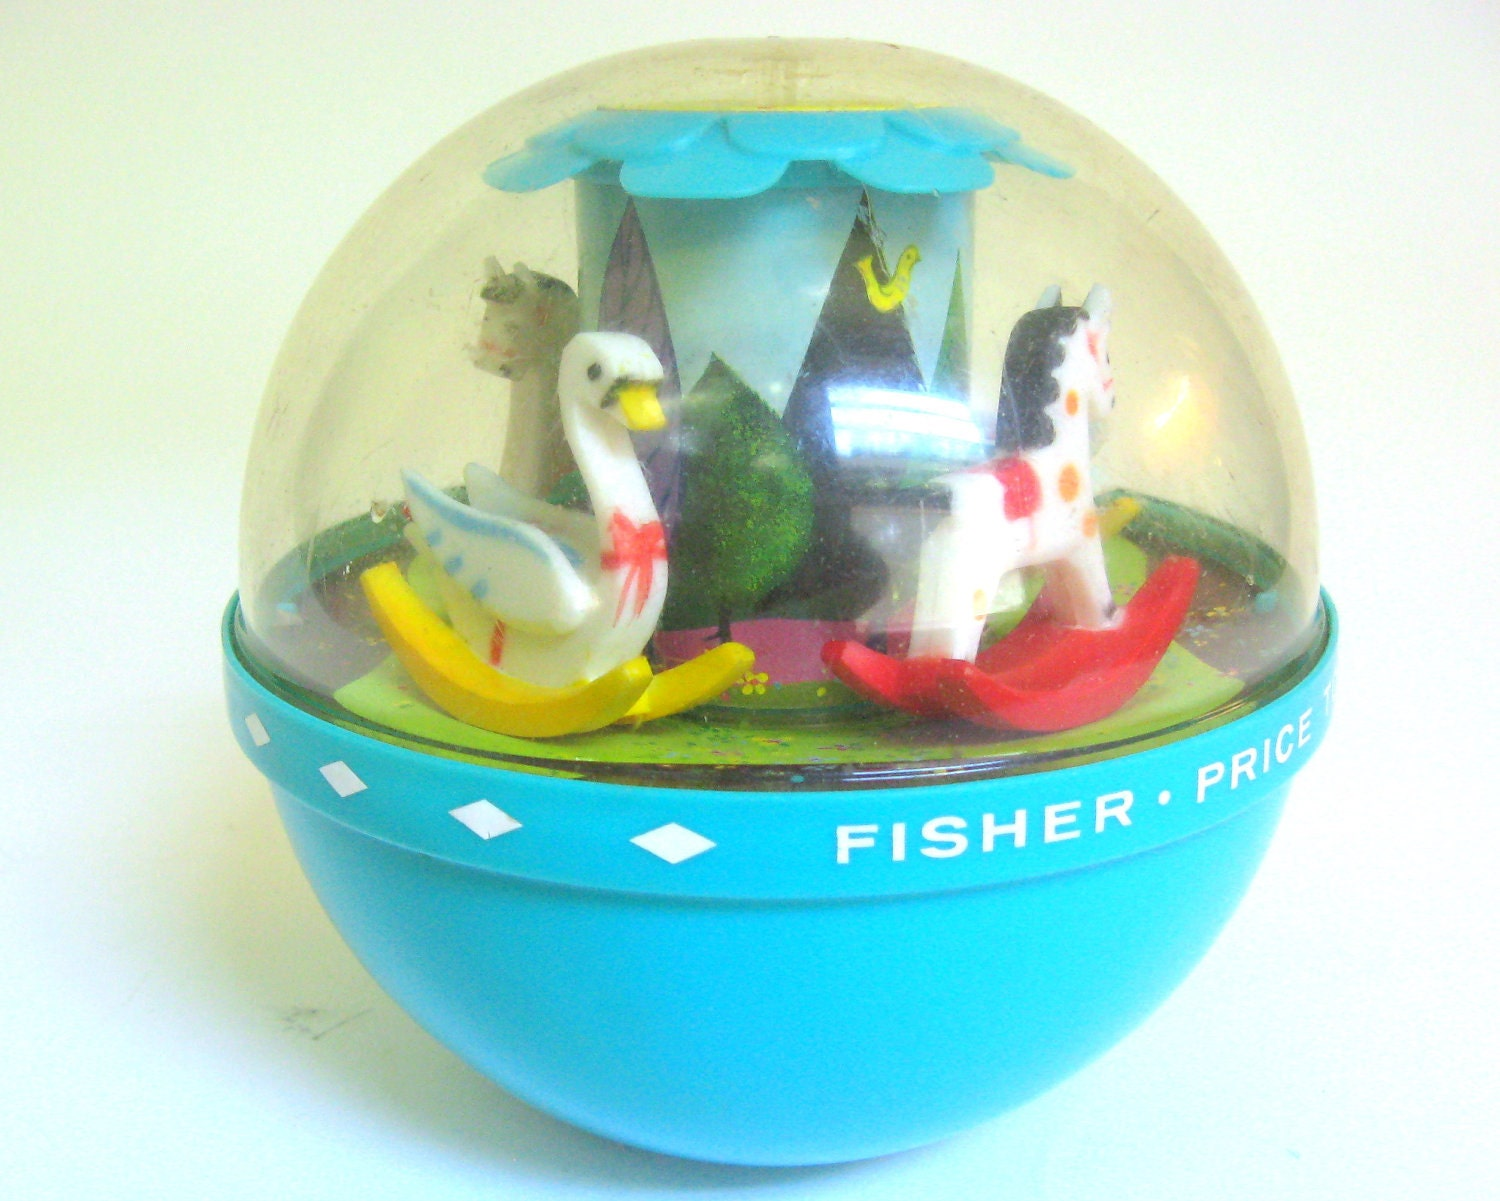 Fisher price vintage toys Etsy